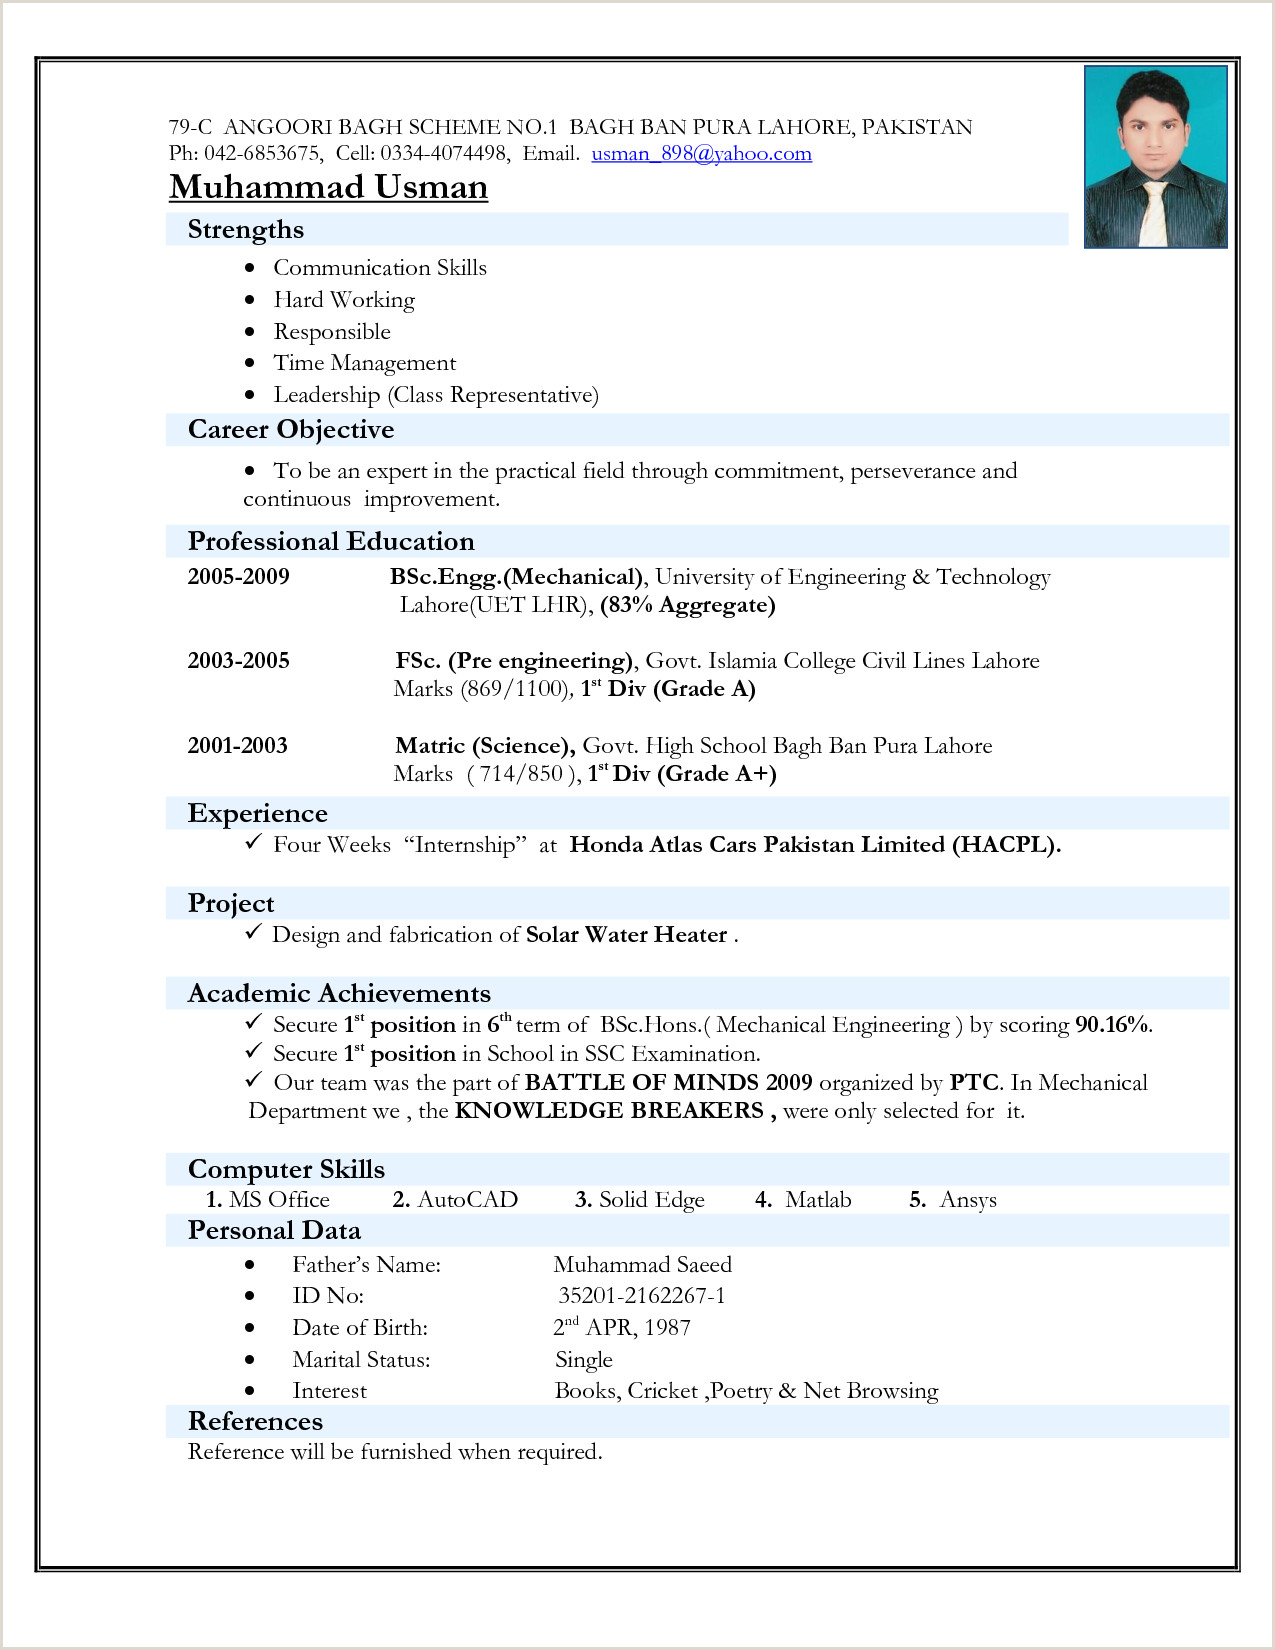 Cv format Doc for Freshers In Pakistan Pin by Aa Abhimanyu On Resumes